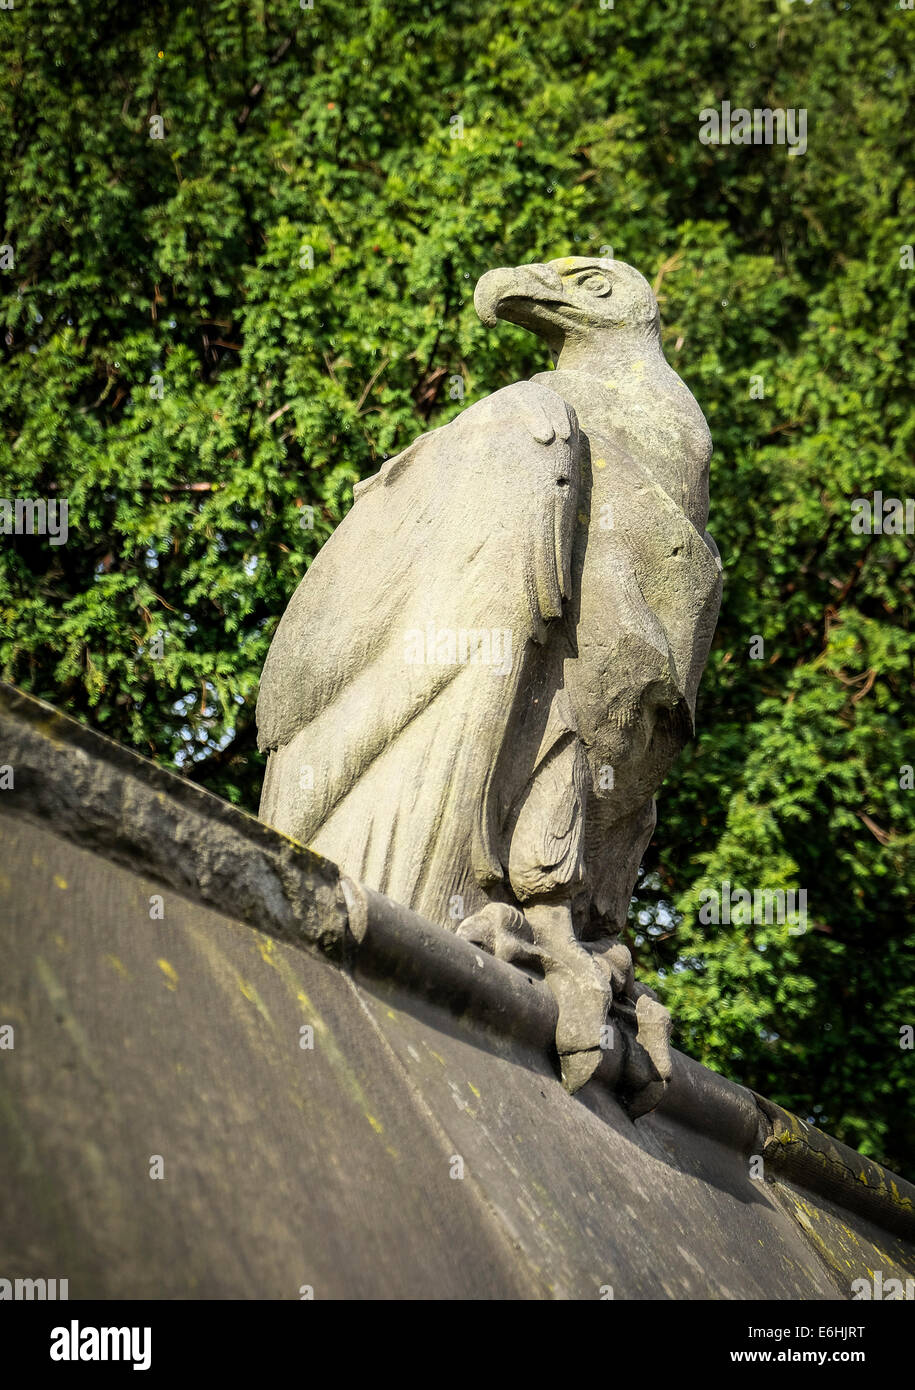 The sculpture of a Vulture on the Animal Wall at Cardiff Castle. - Stock Image